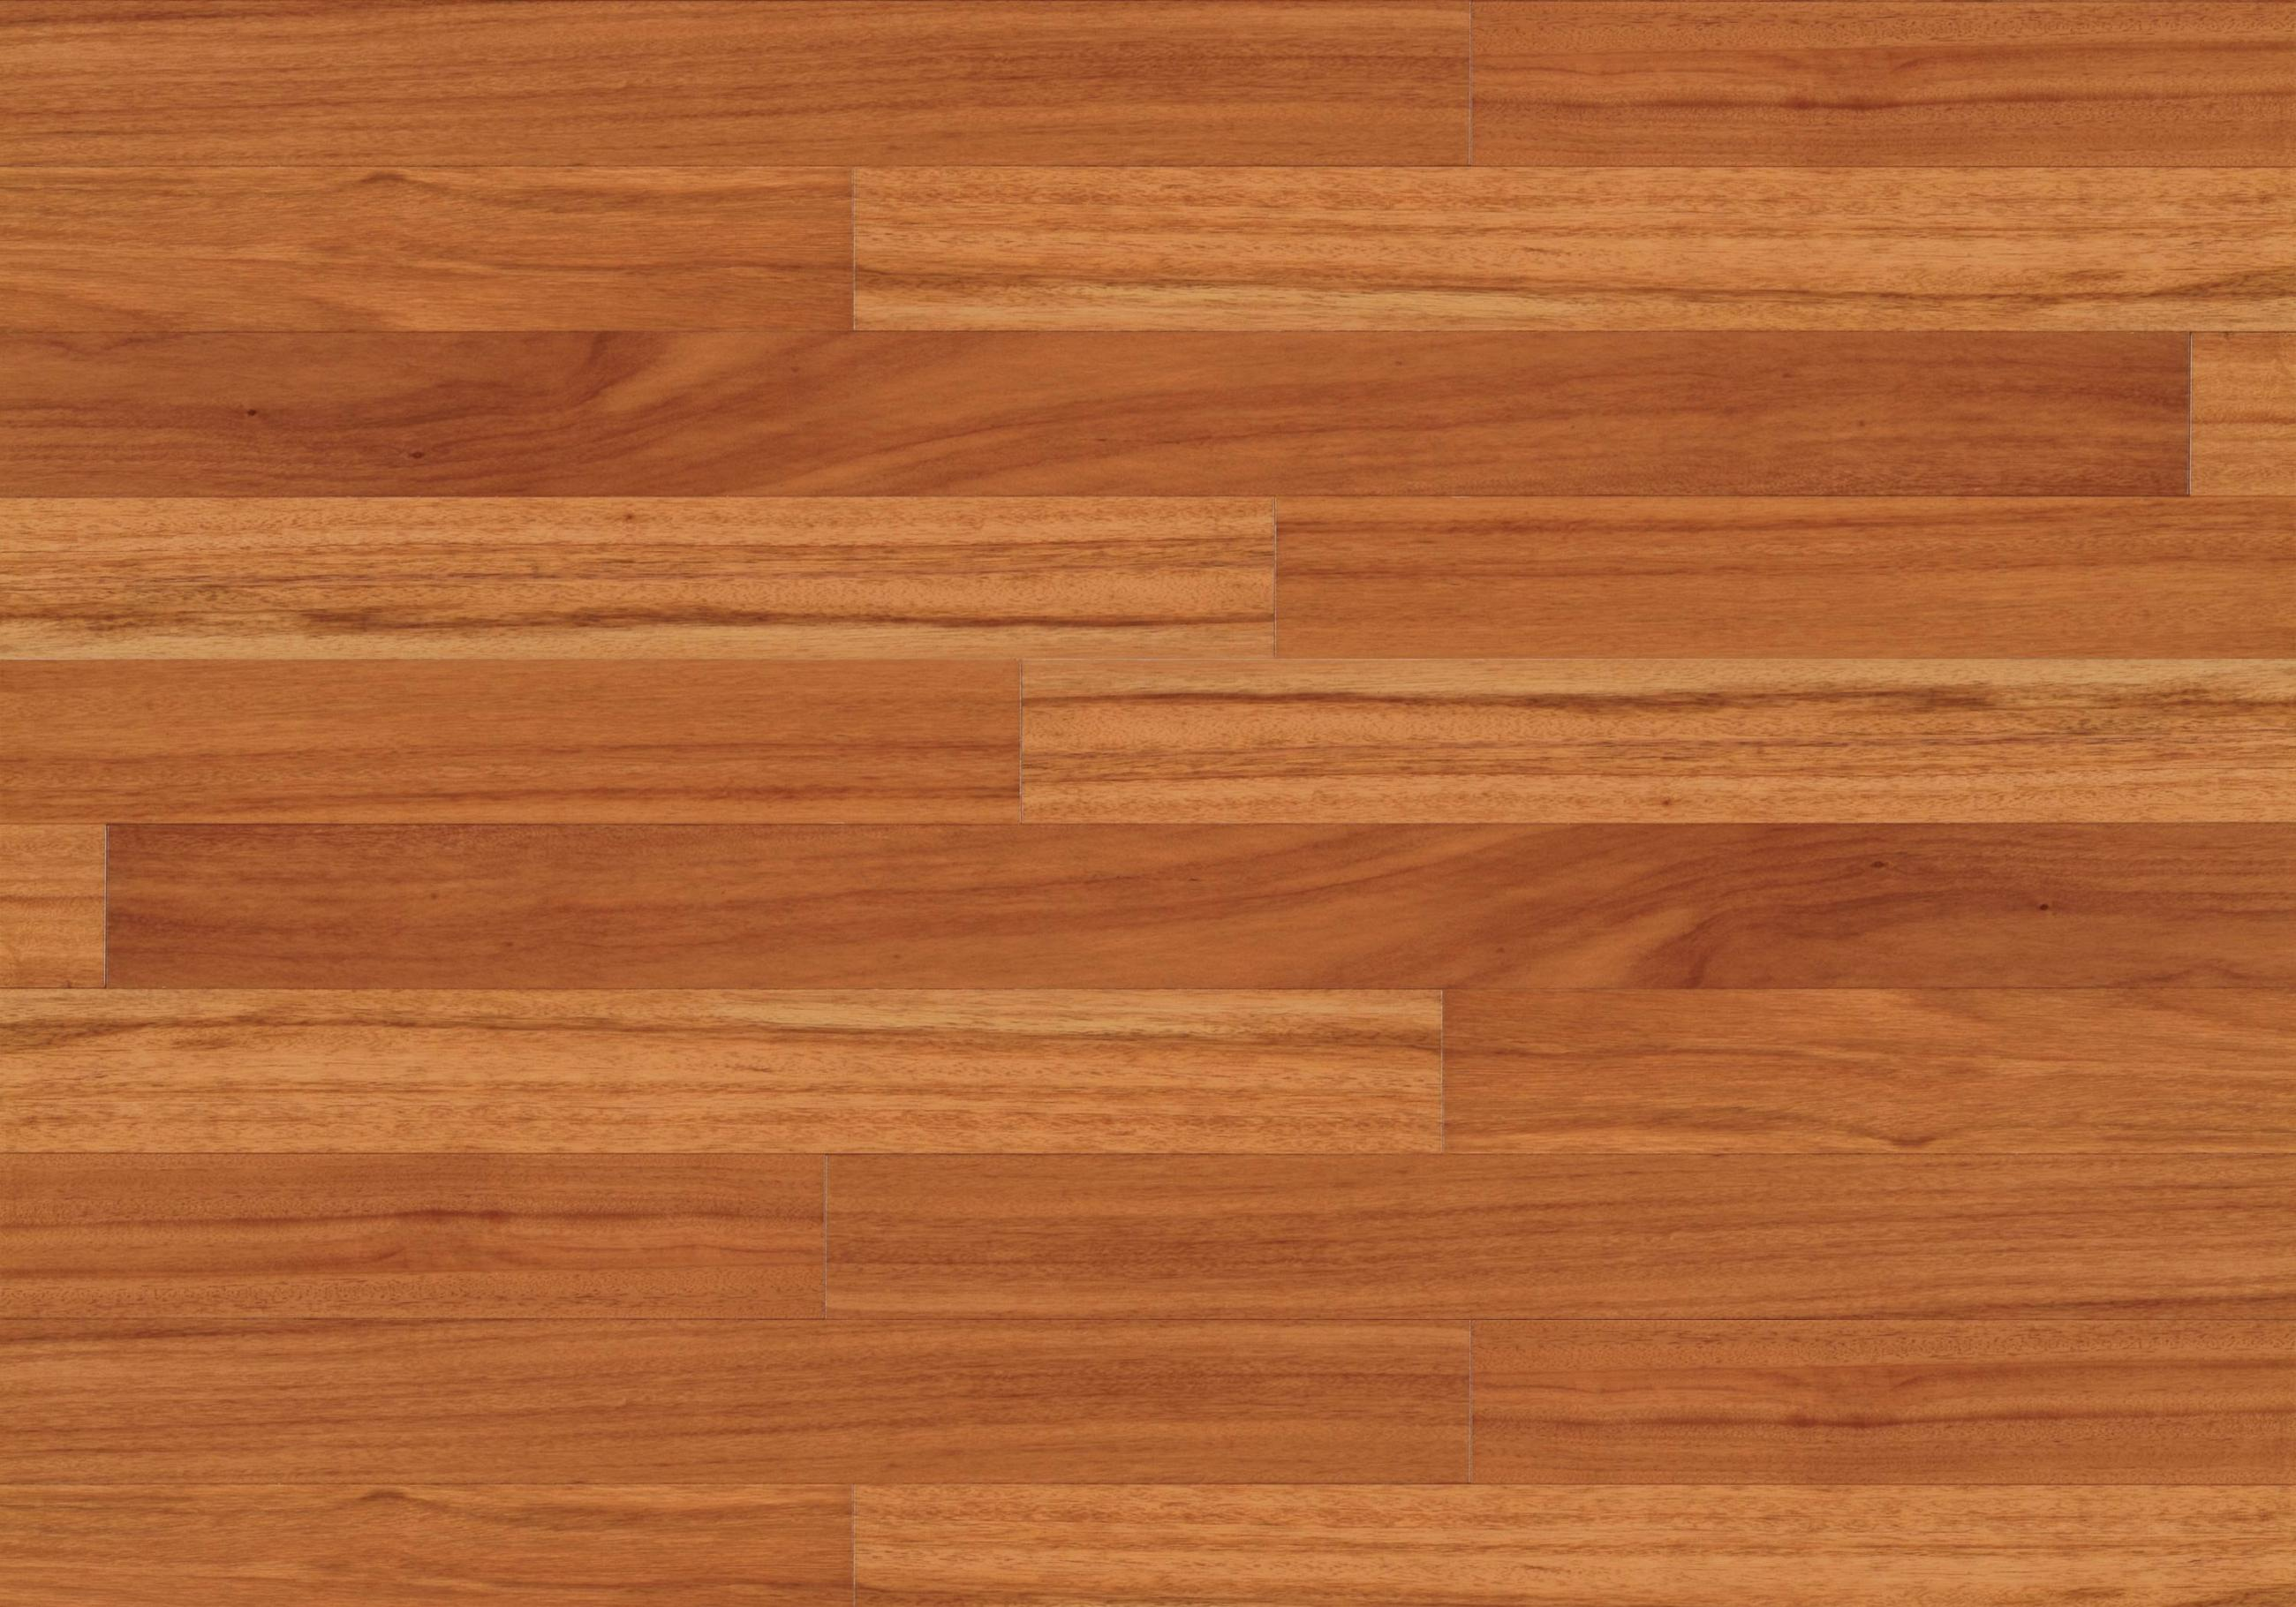 Engineered hardwood flooring specialty store in anaheim ca for Wooden floor tiles